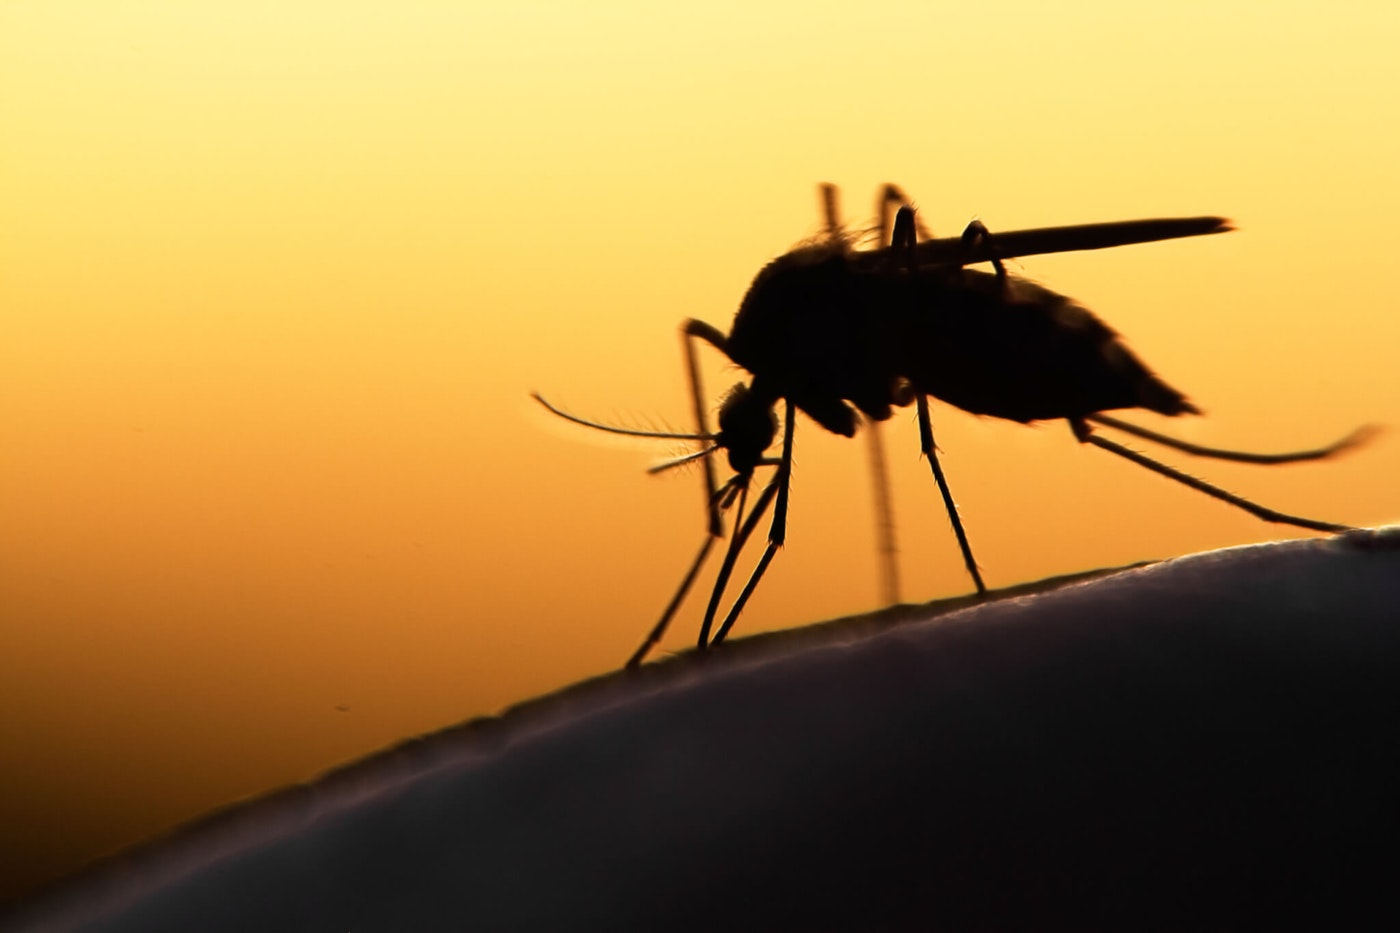 Michiganders will need to add mosquitos to the growing list of potentially harmful environmental factors to avoid this summer. Photo via Shutterstock.